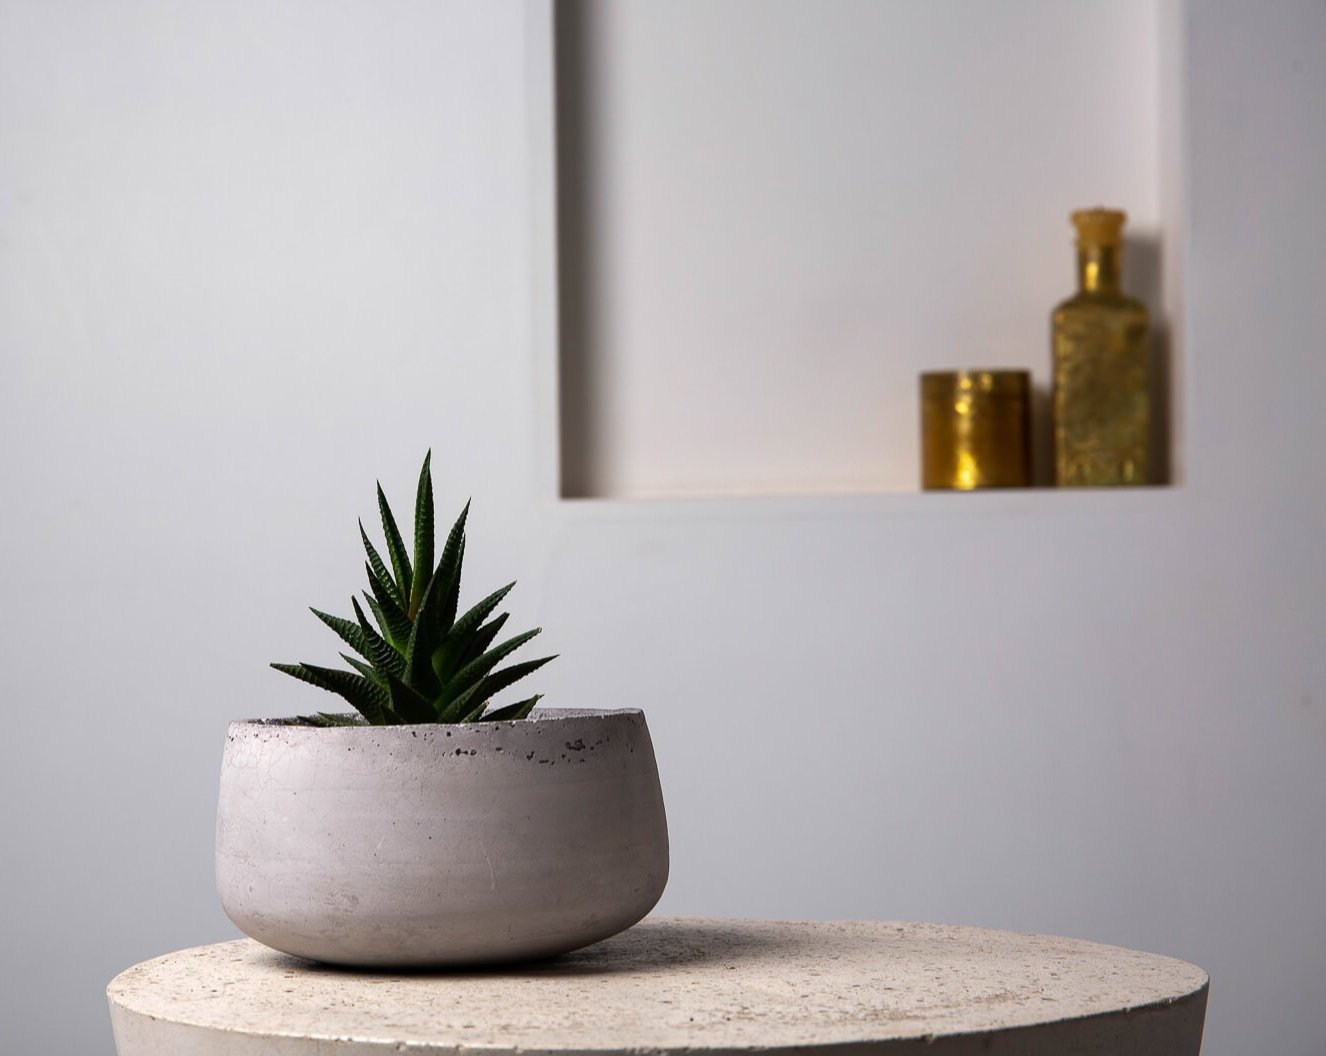 Concrete Modern Vessel Planter Grey - Handpressed Collection-Eliteearth